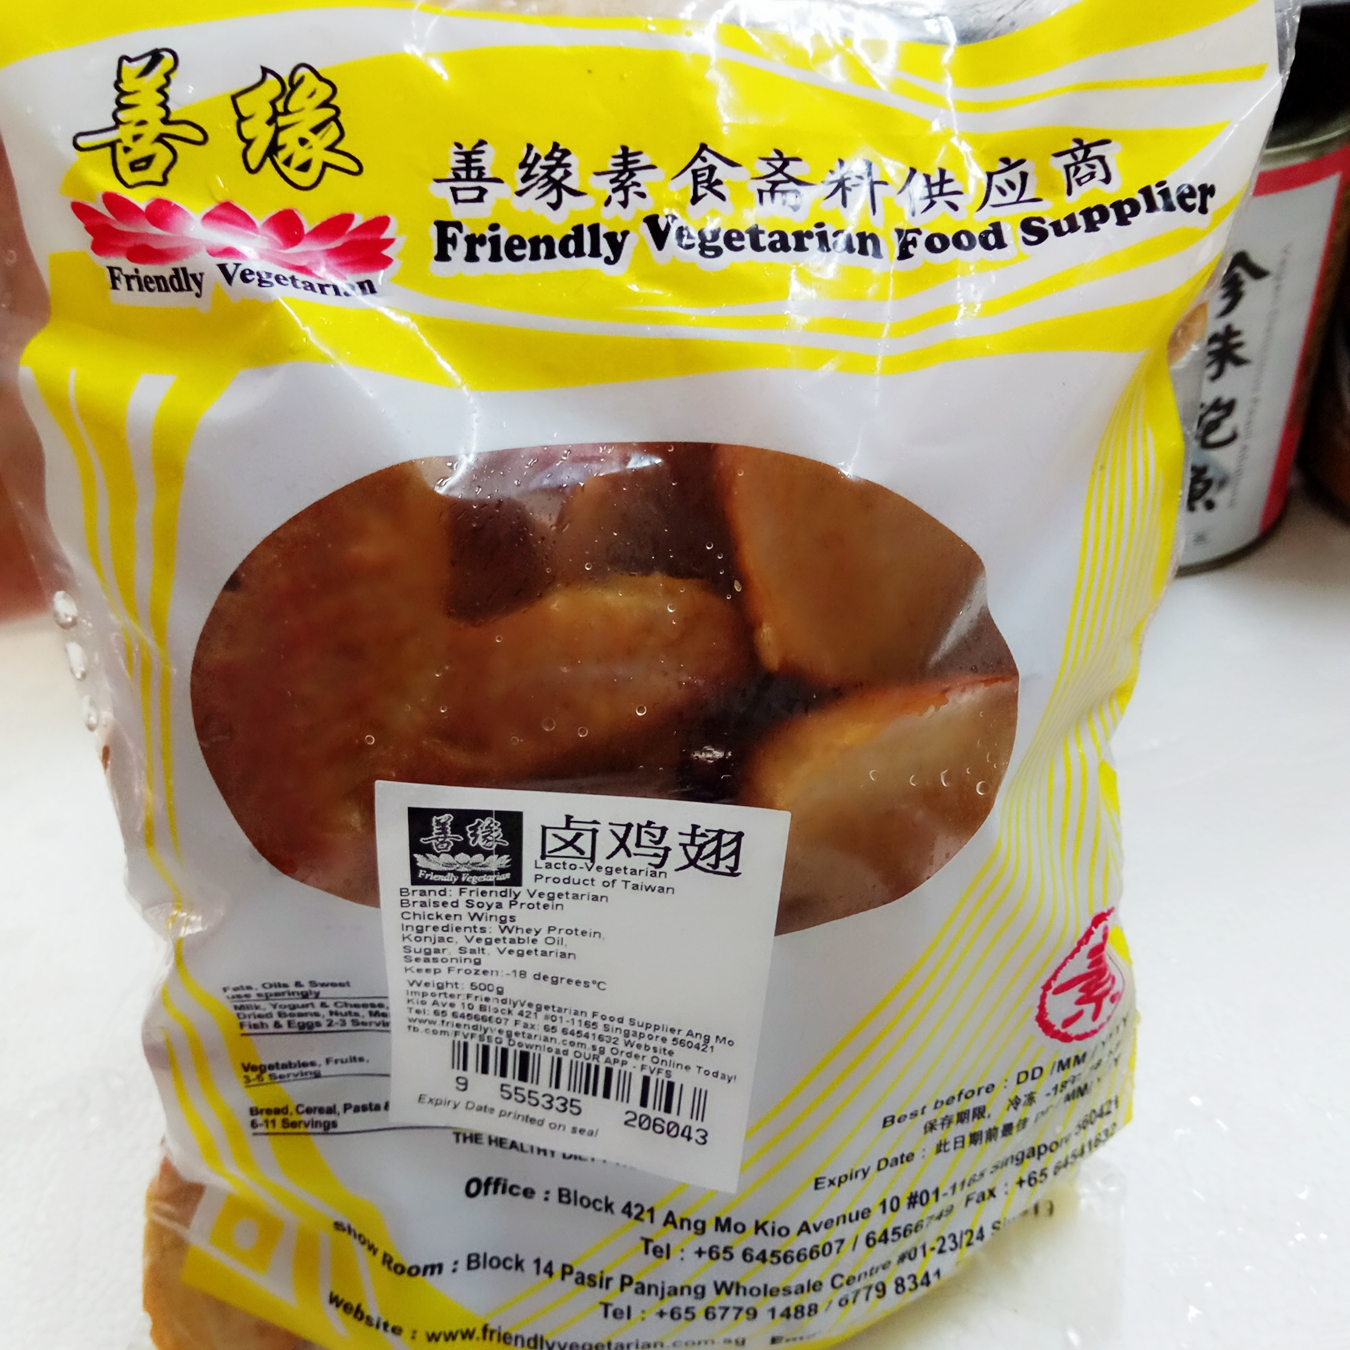 Image Veg. Soya Protein Chicken Wings 善缘-卤雞翅 500grams